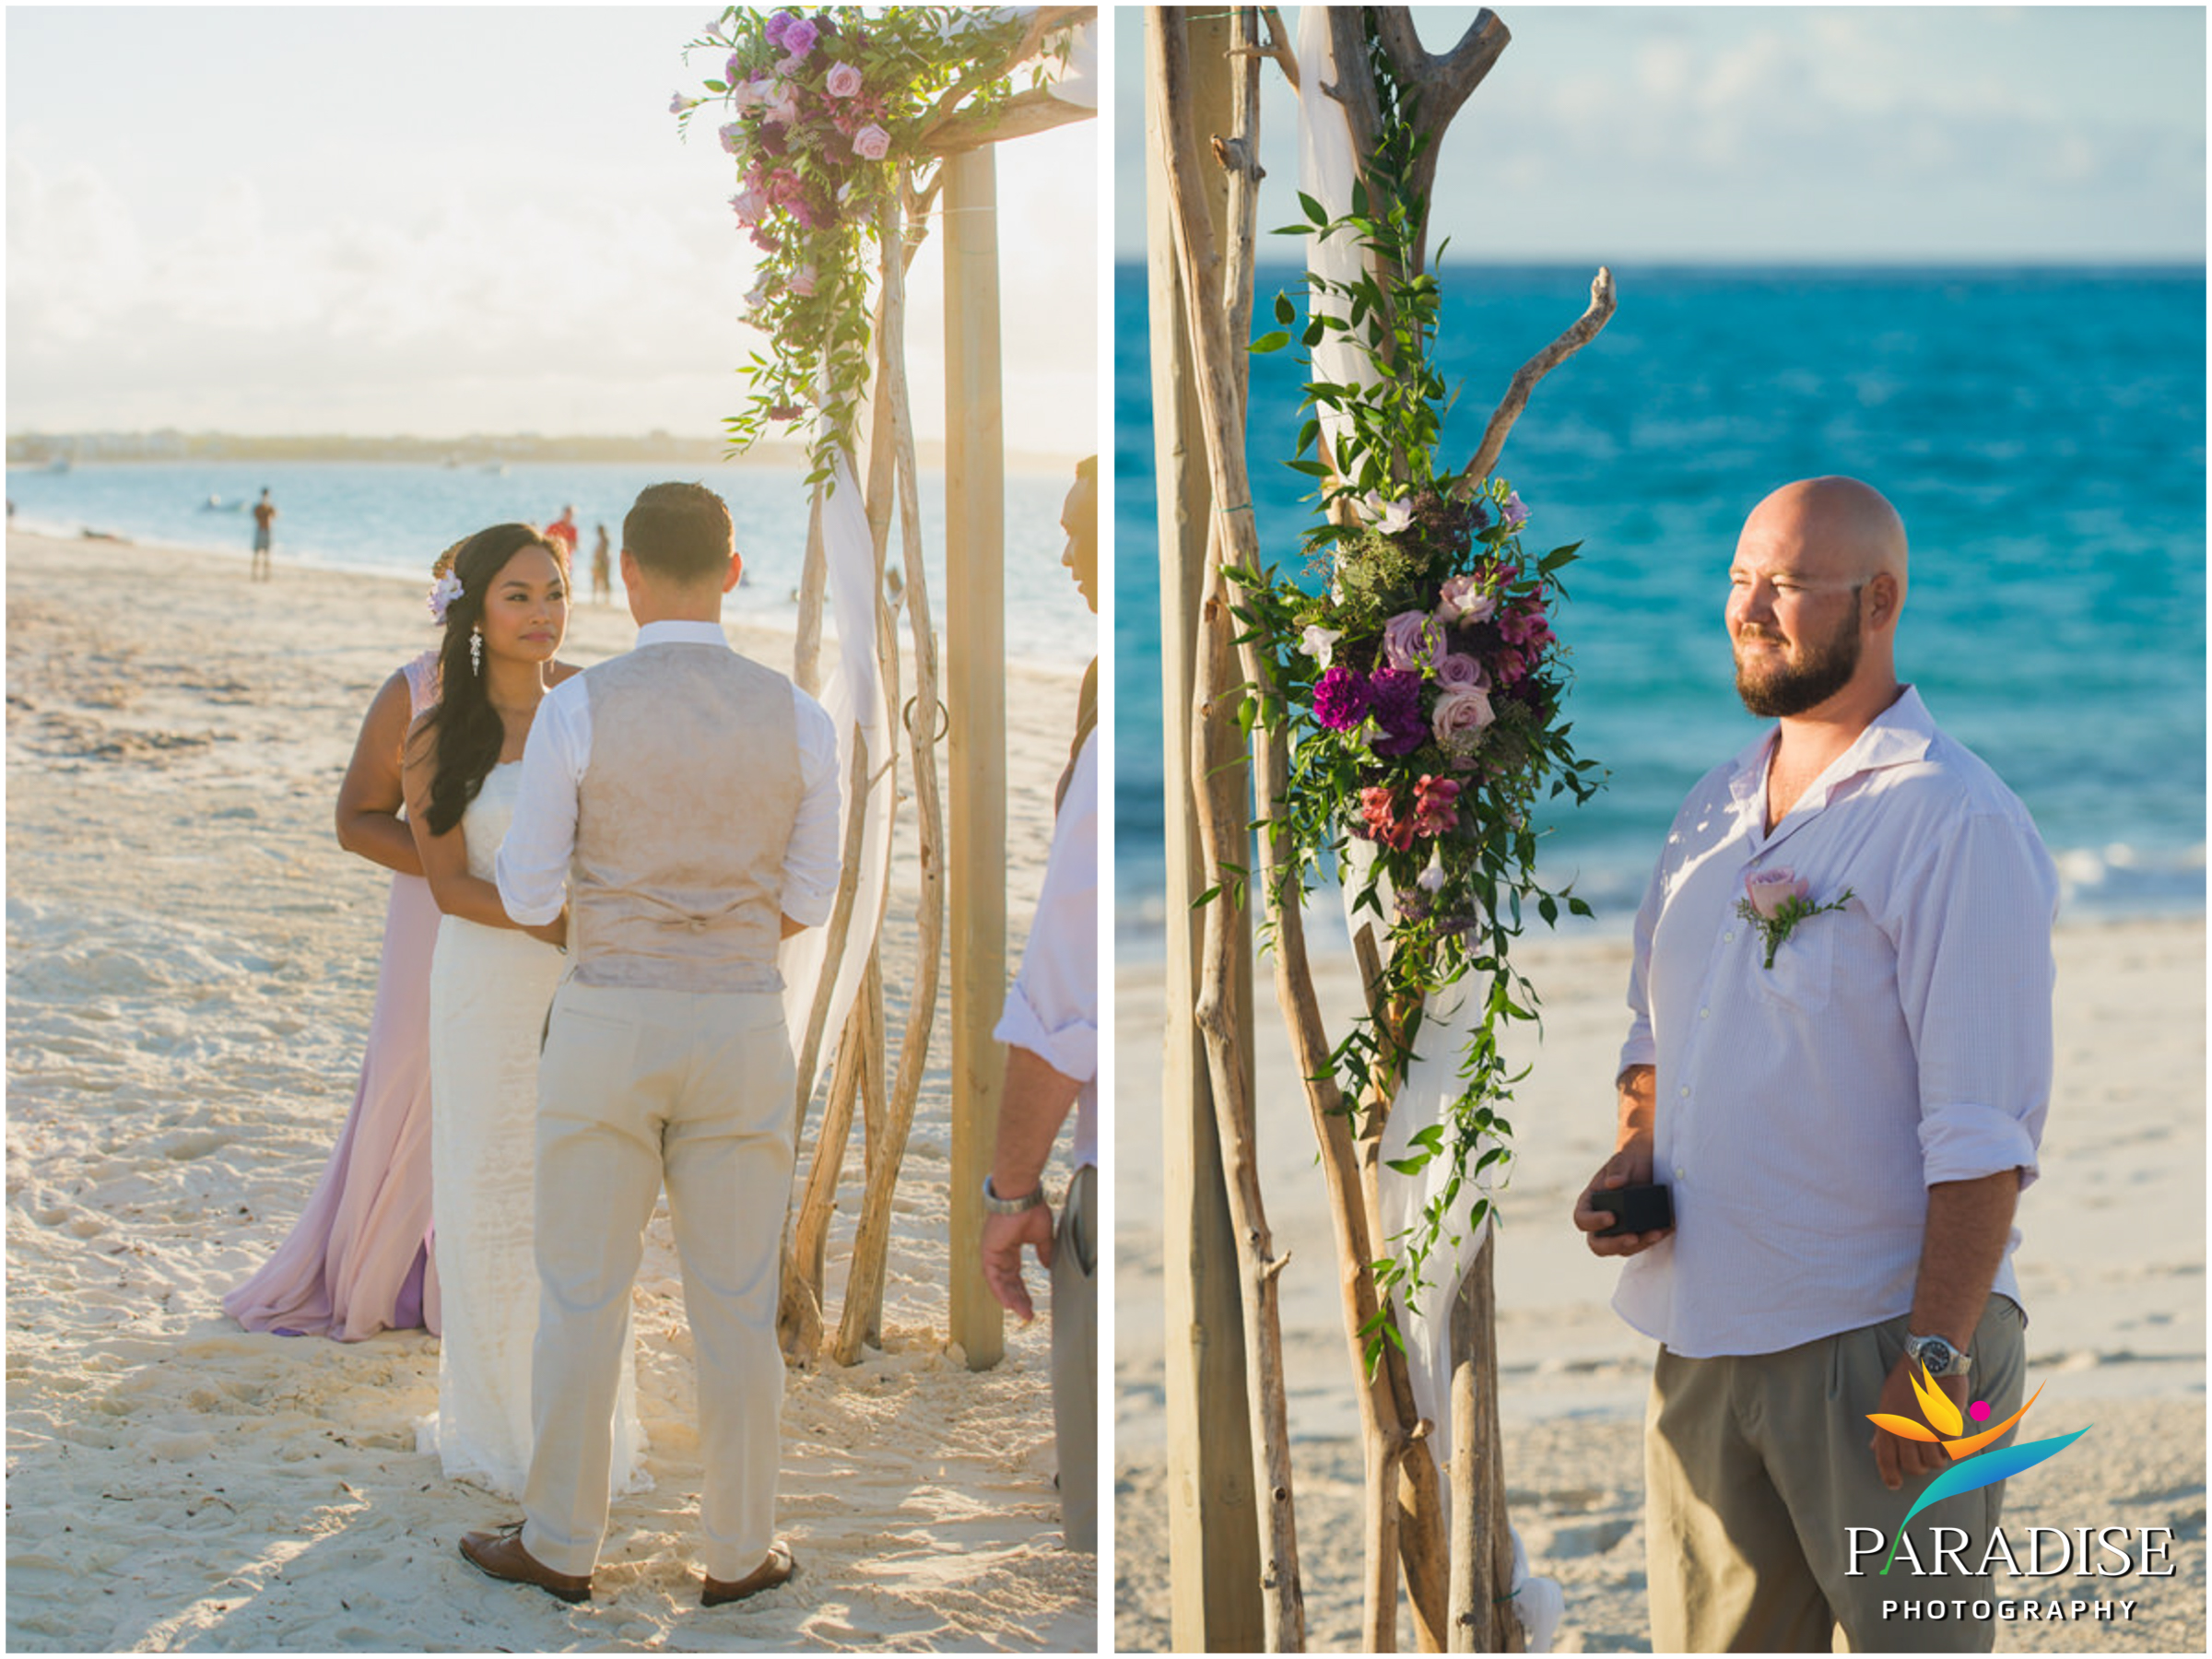 023 destination-wedding-turks-and-caicos-nila-planner-island-caribbean-somerset-bay-bistro-grace-bay-beach